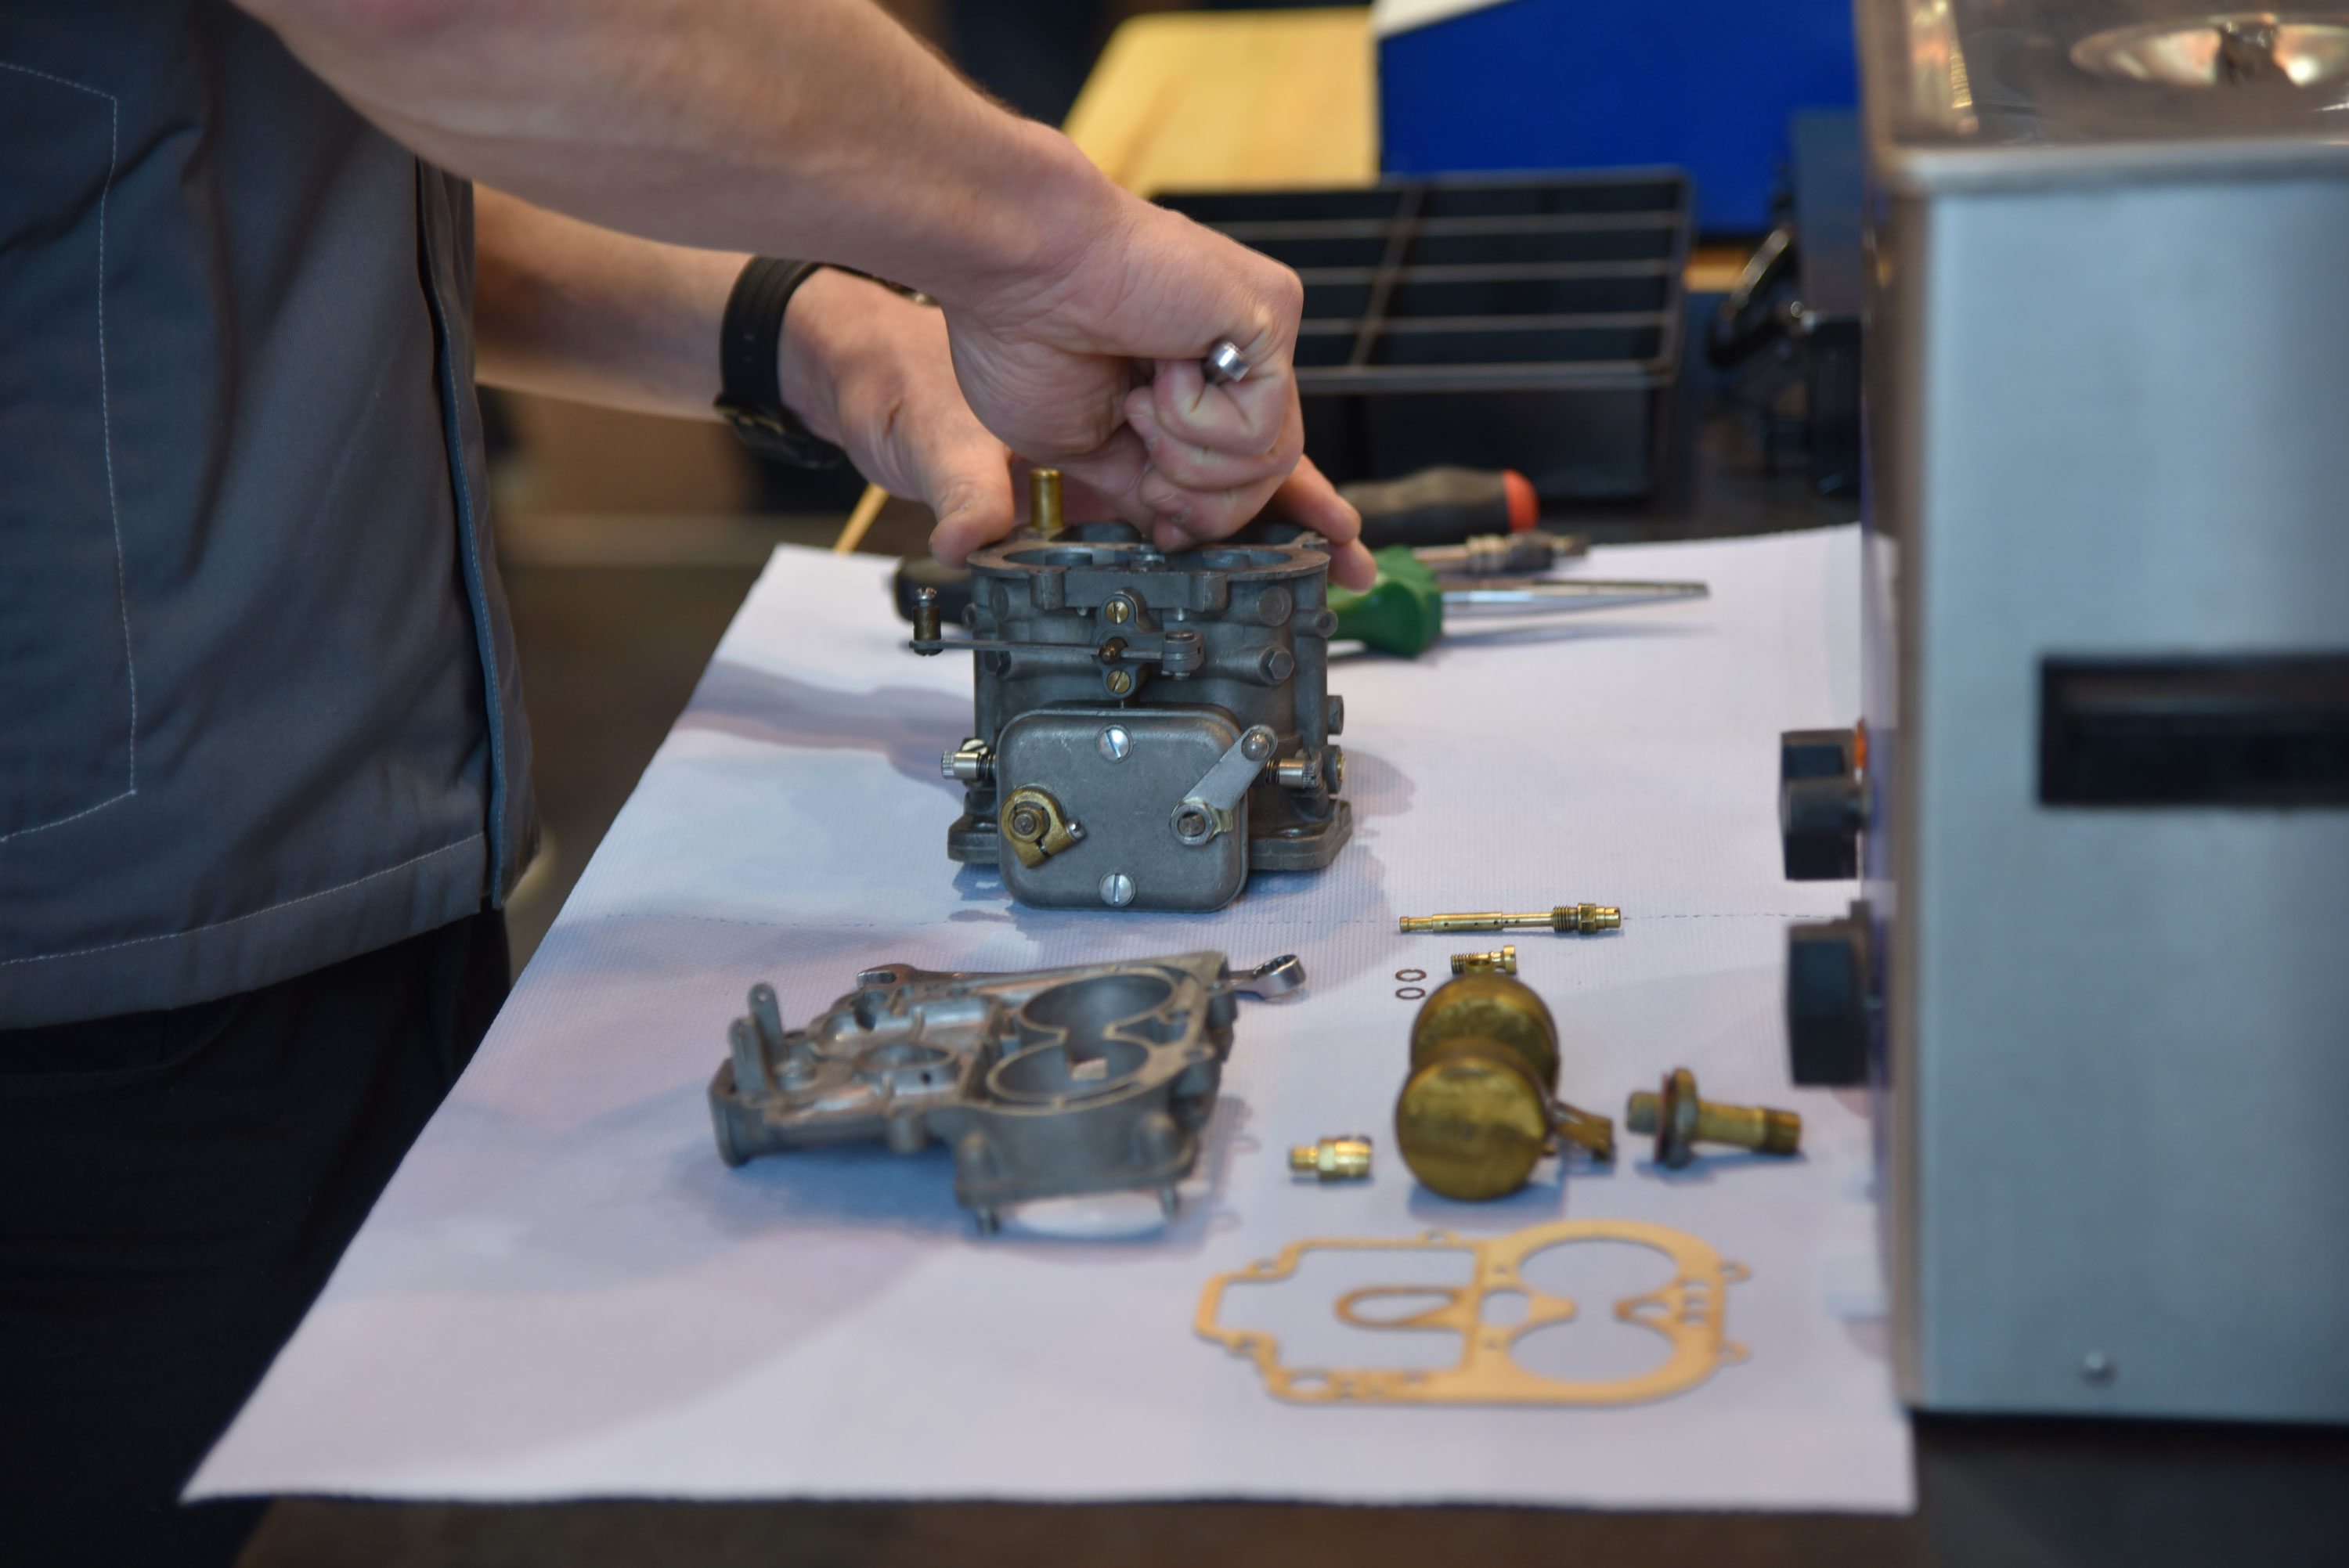 The impressive display of Eberlein Ferrari, a big-time new and classic Ferrari dealer in central Germany, featured a couple of techs who seemed to be disassembling and assembling the same already restored carburetors over and over in a demonstration of the company's skills.